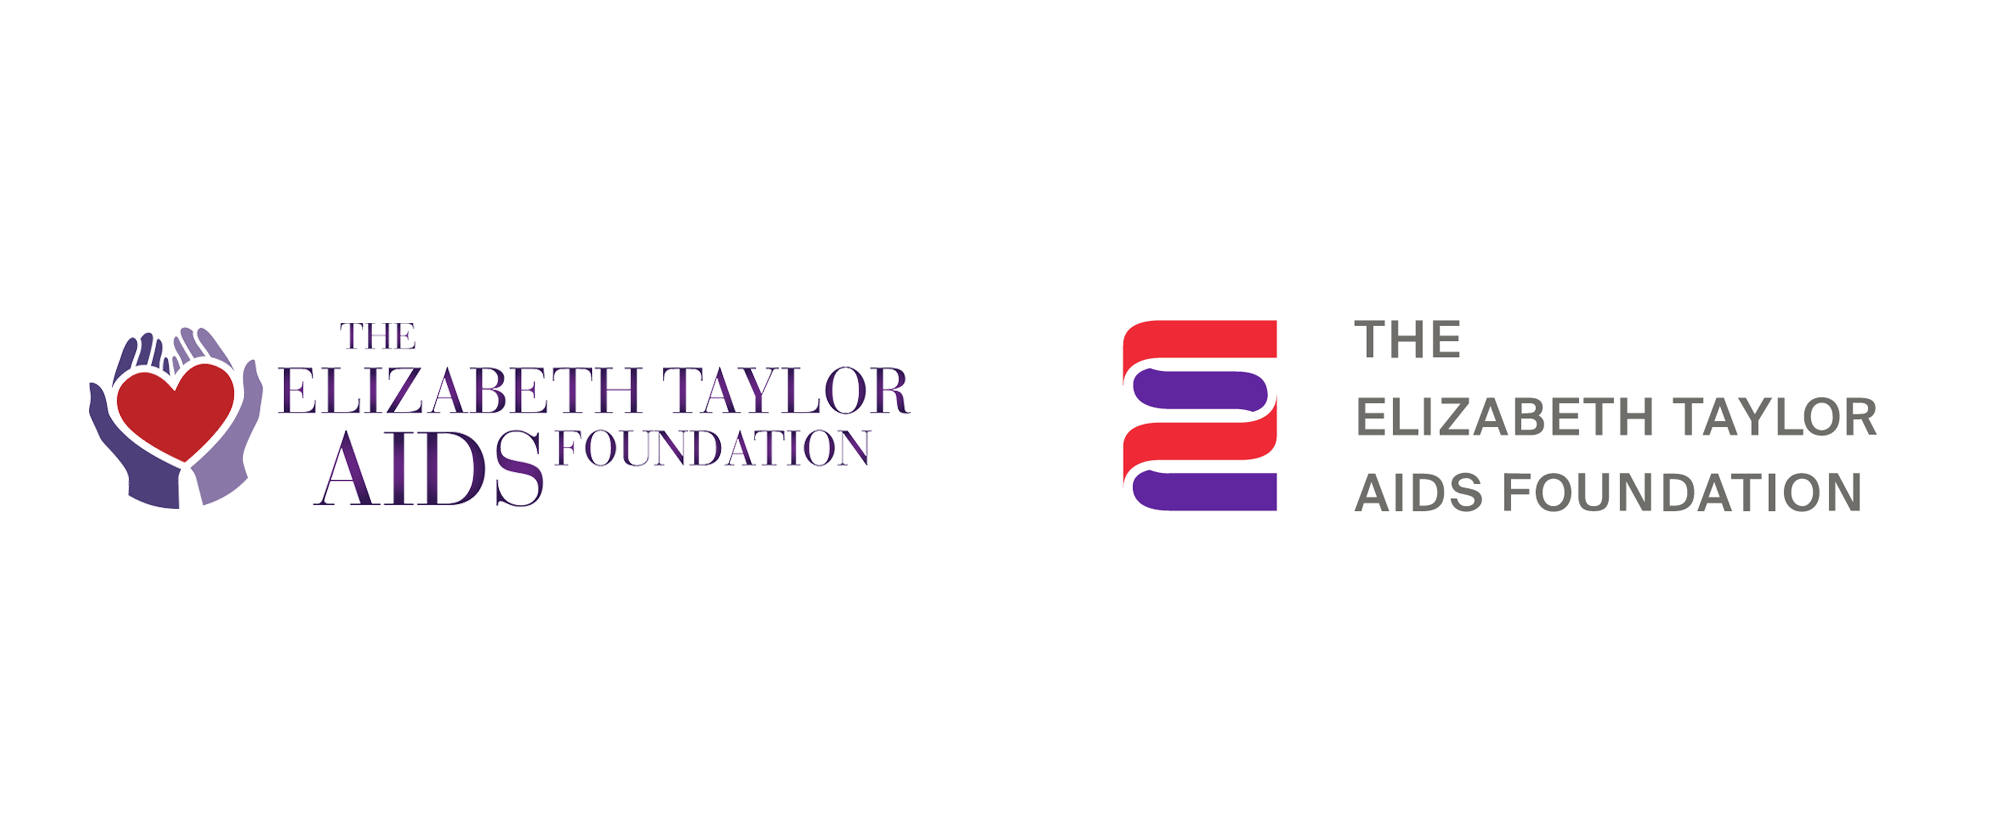 New Logo and Identity for Elizabeth Taylor AIDS Foundation by Studio Cadre